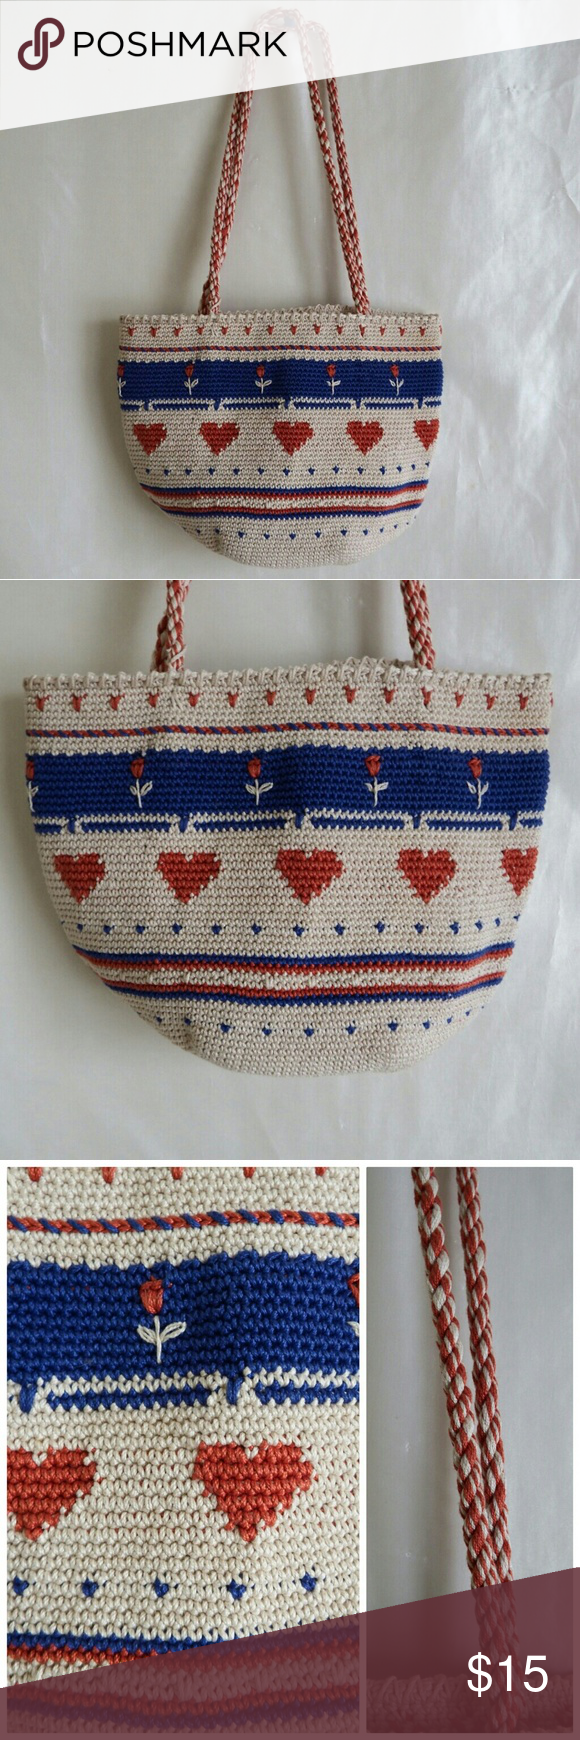 """Crochet Love Bag Sweet crochet bag in tightly woven cotton with hearts & roses detail. Woven handles.  Natural color with blue & red.  Perfect casual bag for a beach outing or 4th of July picnic. 12"""" W x 8"""" H x 8"""" D Custom Bags"""